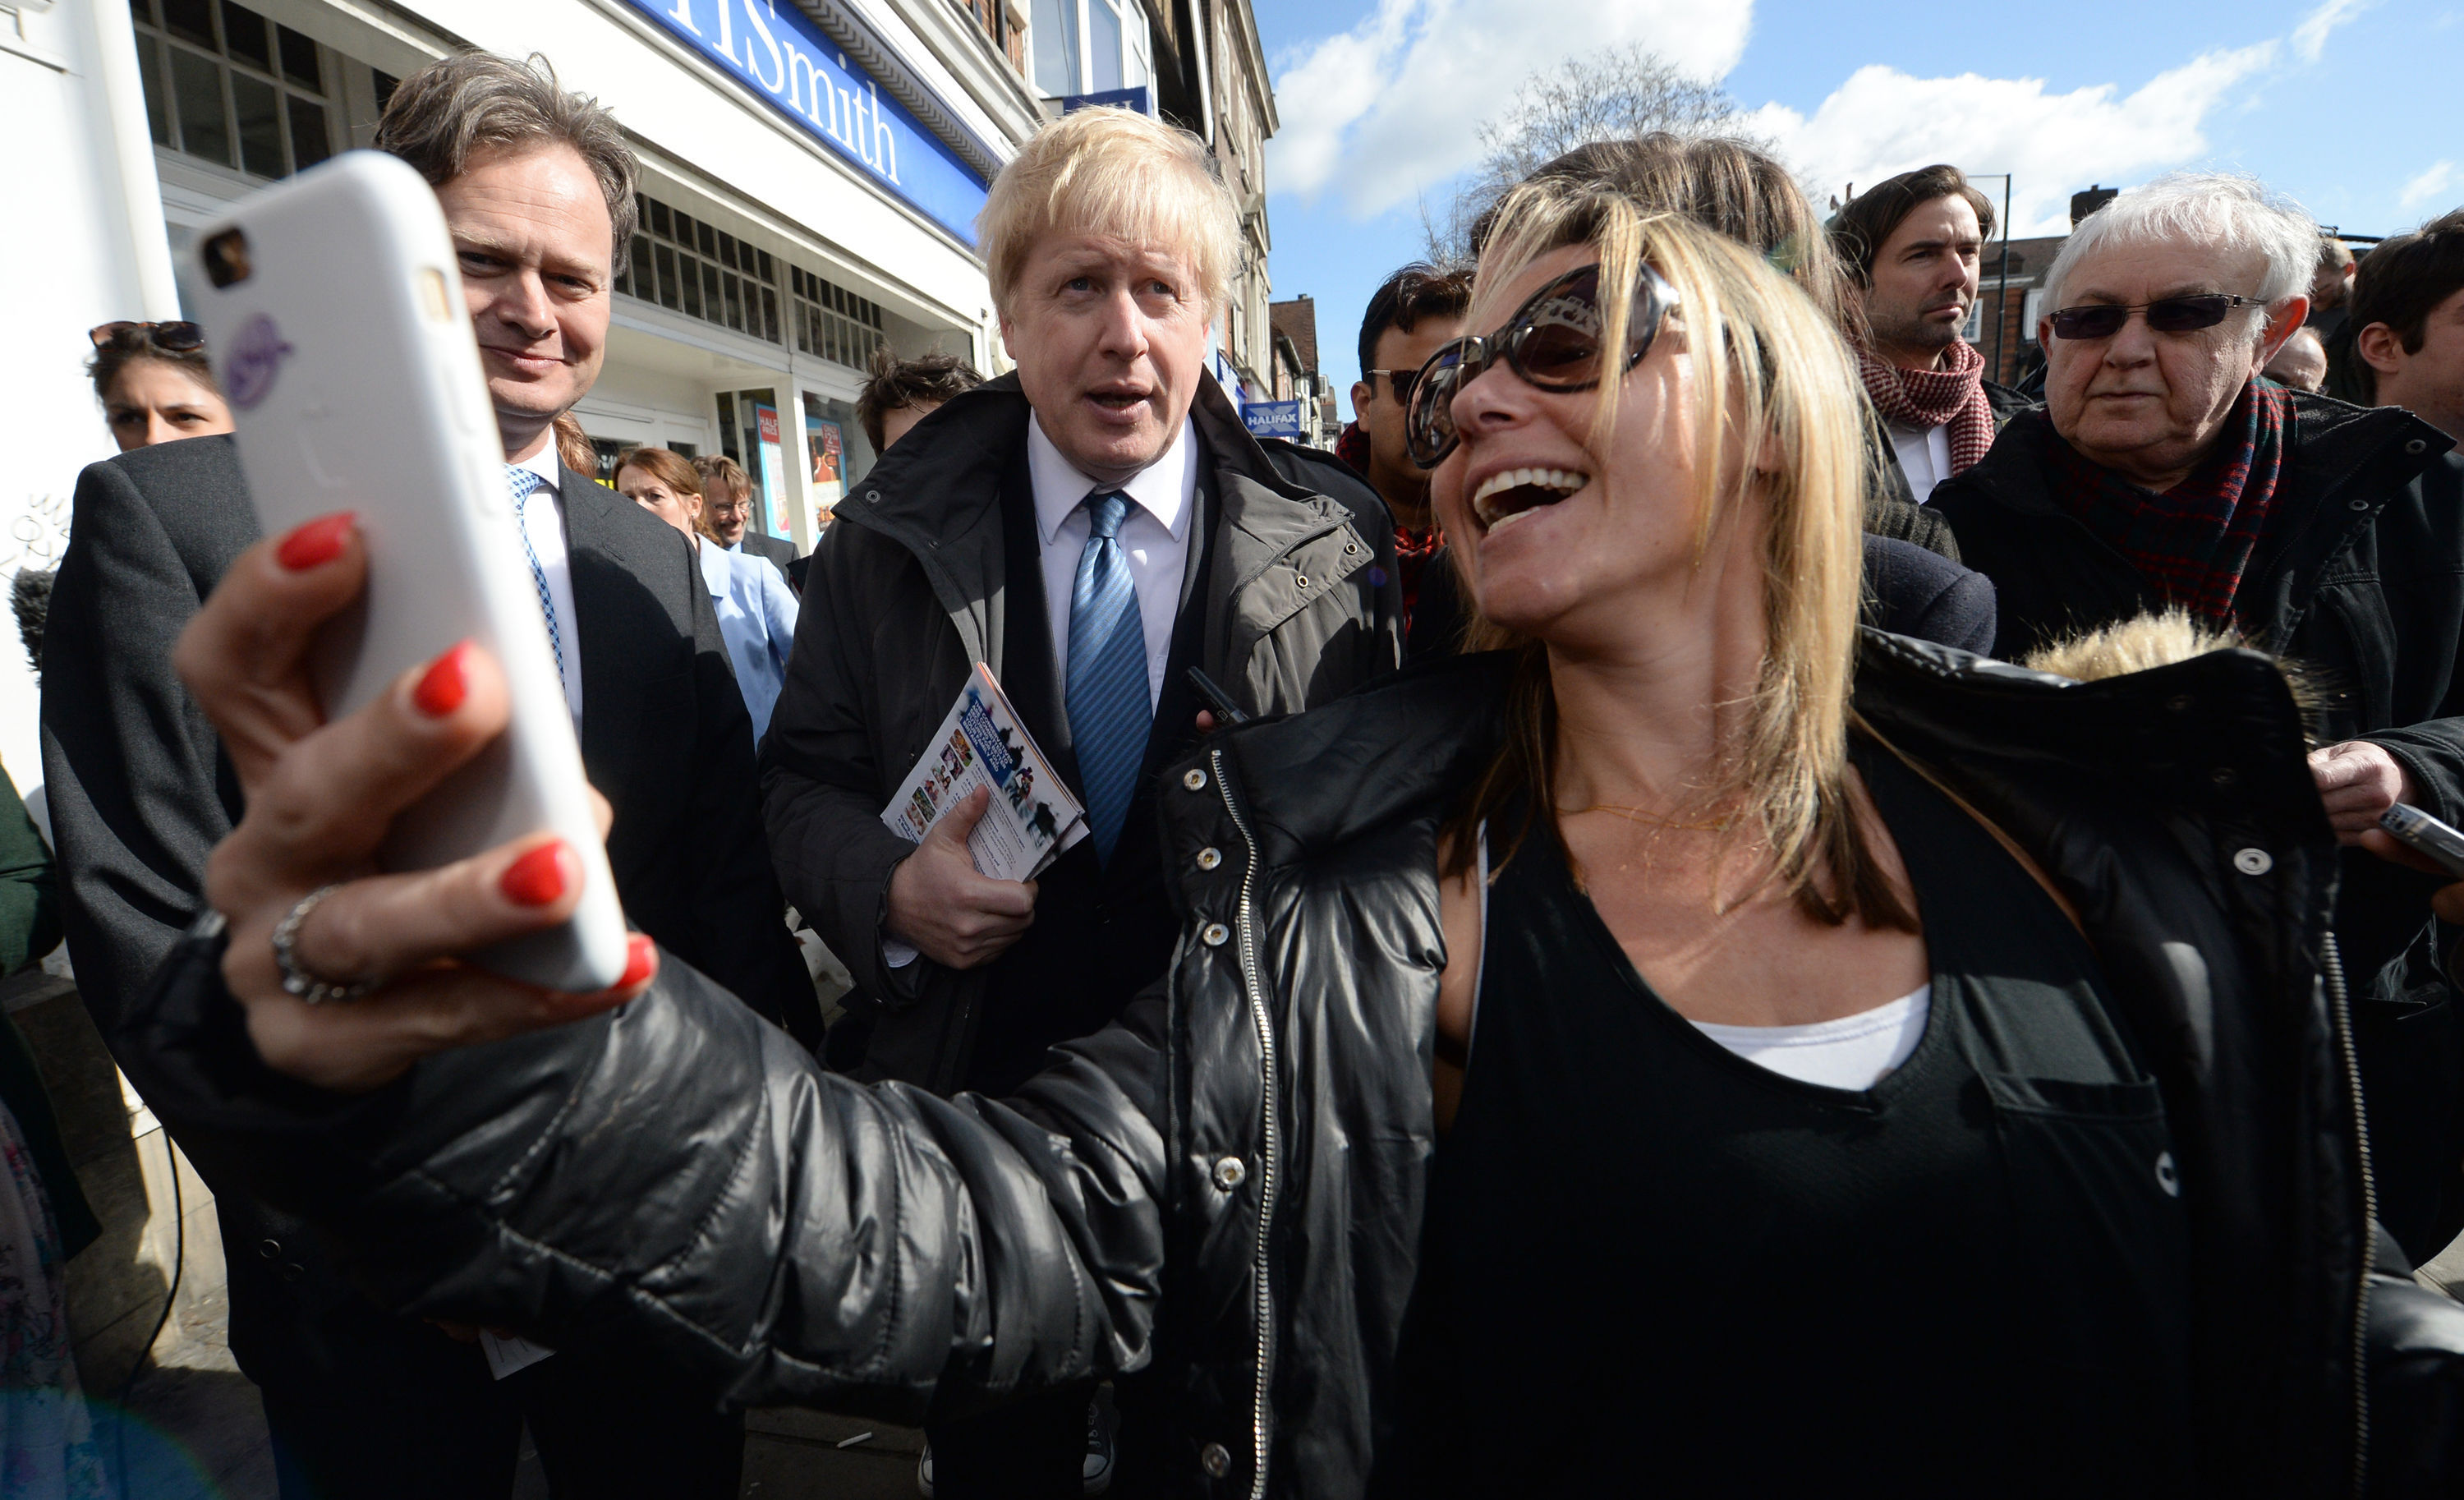 A member of the public takes a photo on their mobile phone of Mayor of London Boris Johnson after he launched the Conservative London campaign at Hartley Hall in Mill Hill, London.